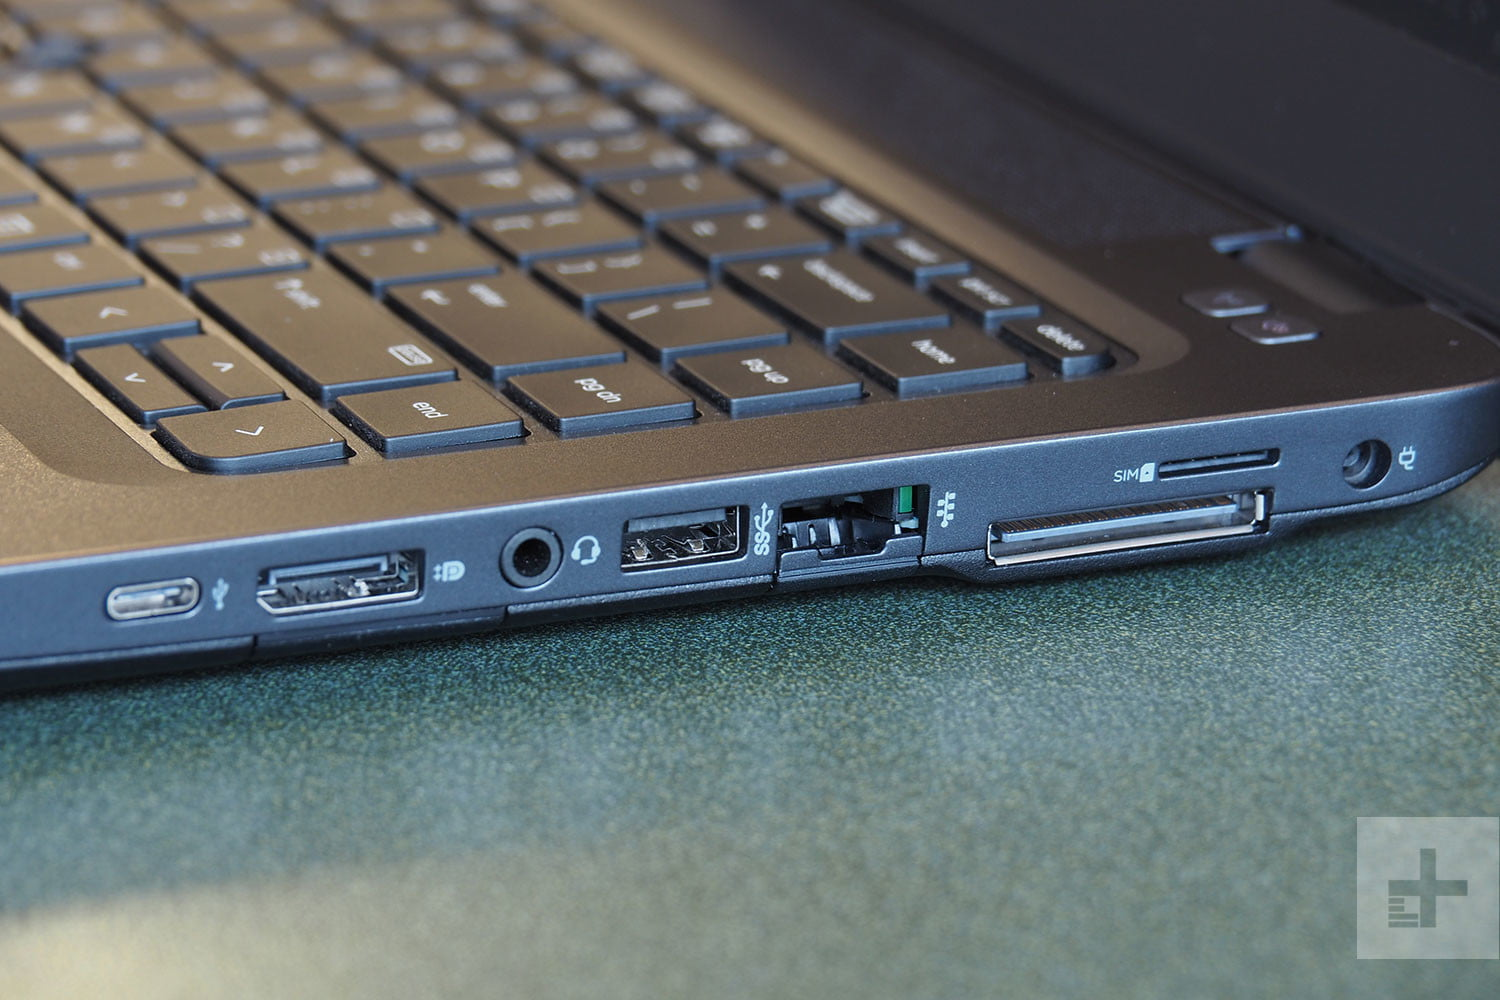 HP ZBook 14u G4 Review | Digital Trends